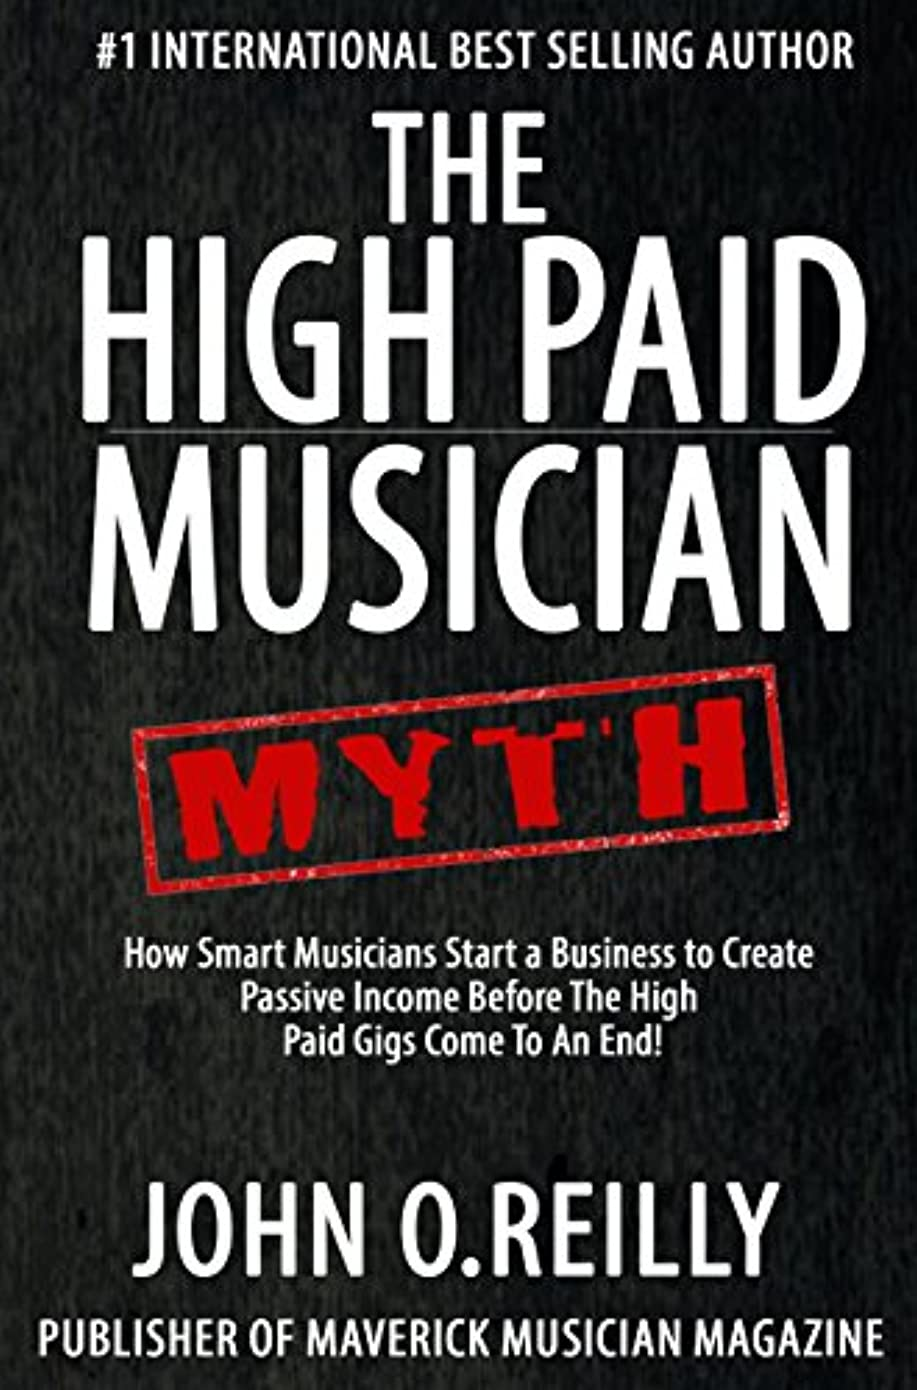 シェルすぐに優しさThe High Paid Musician Myth: How Smart Musicians Start a Business to Create Passive Income  Before The High Paid Gigs Come to an End (English Edition)